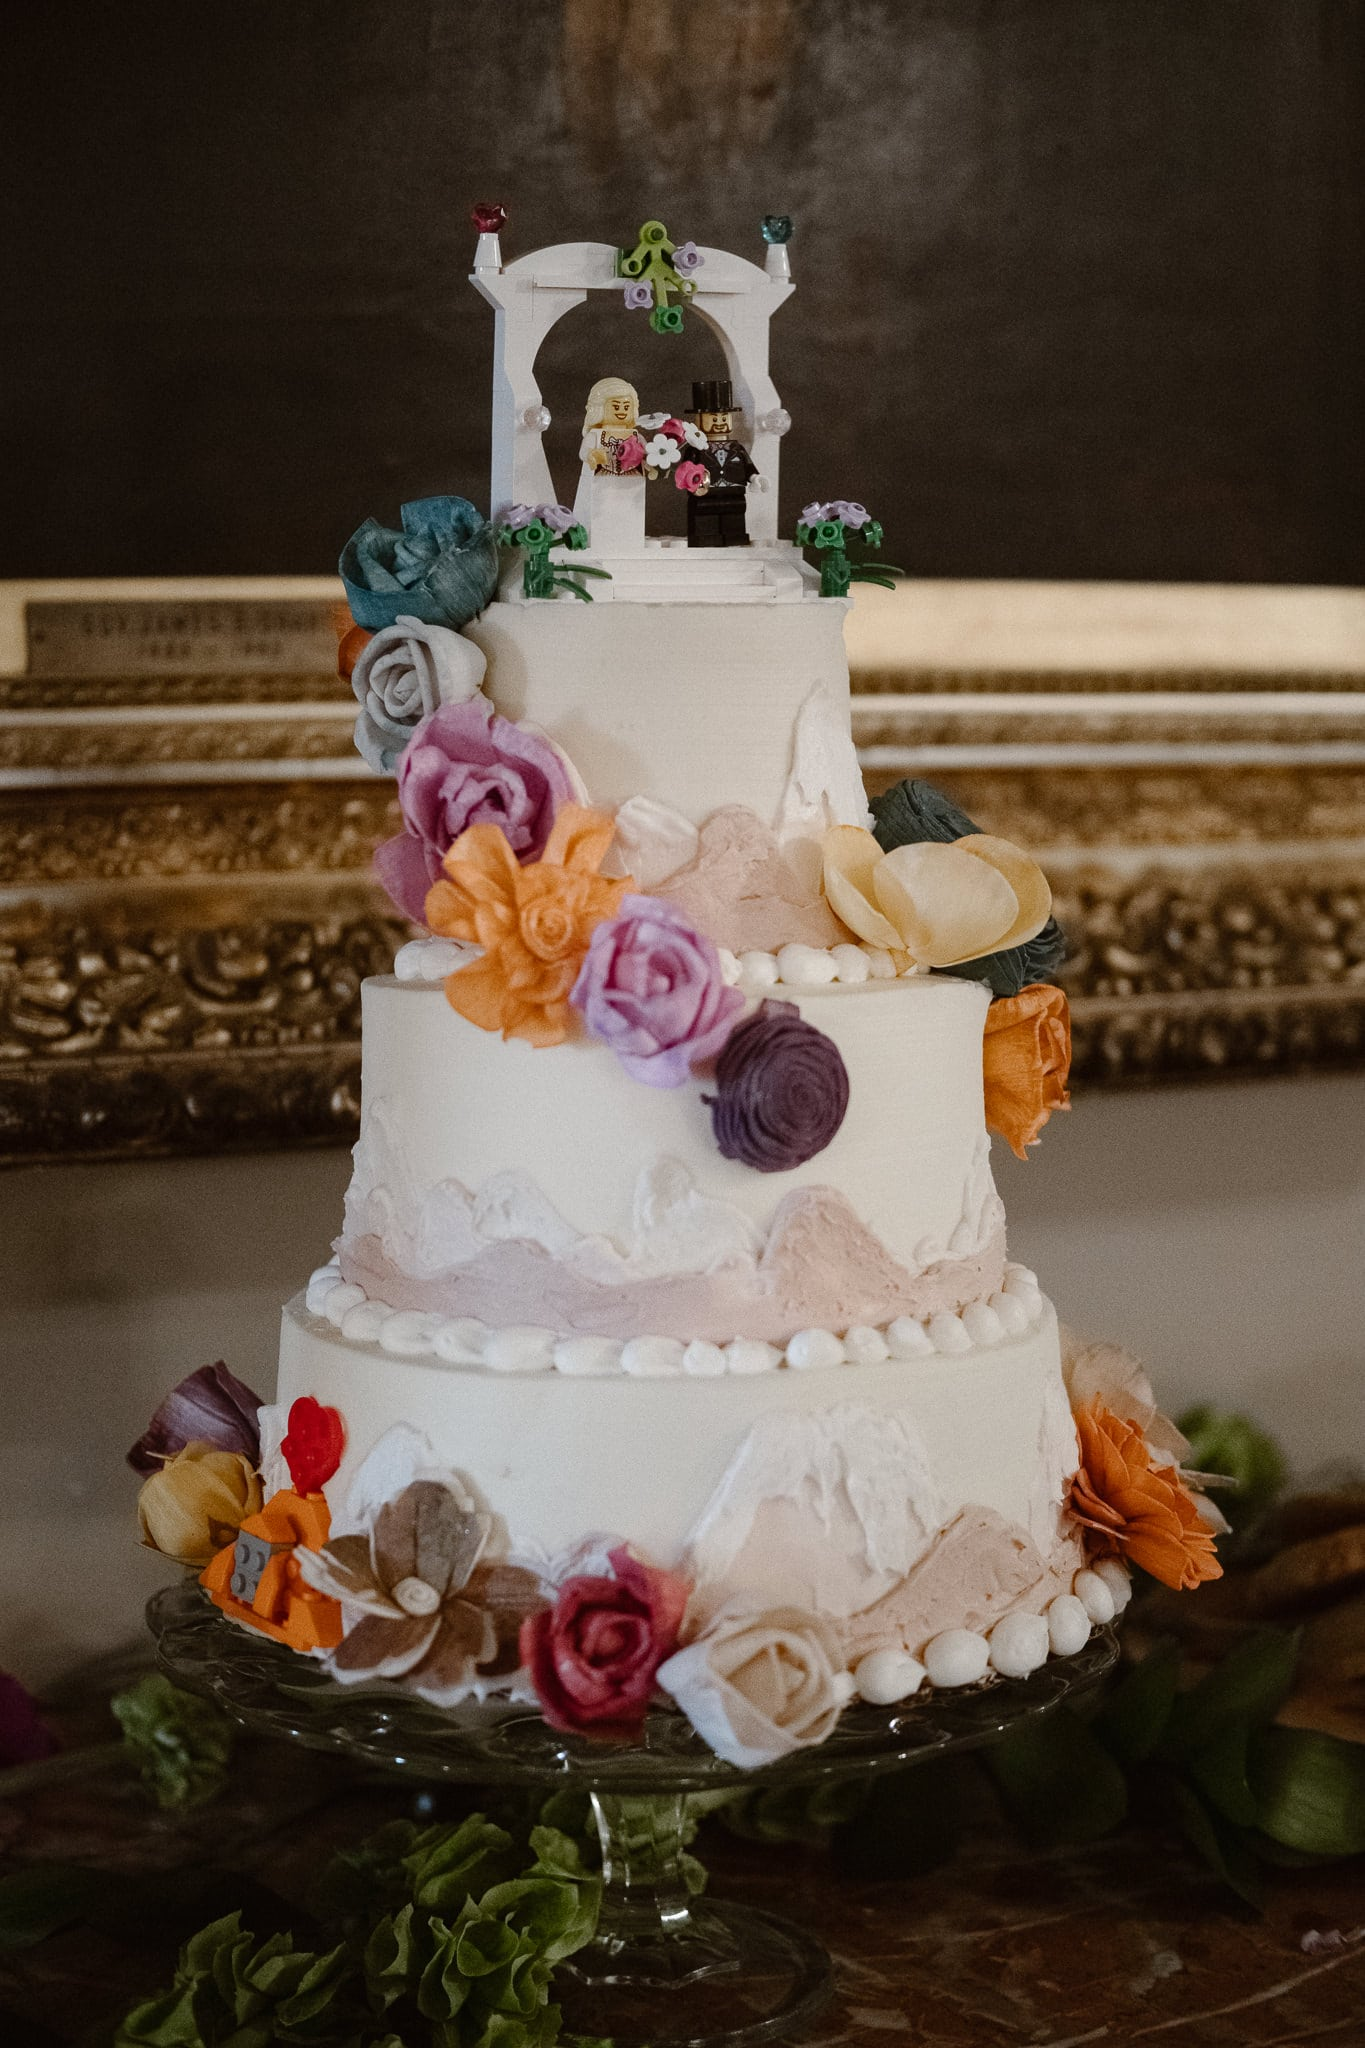 Grant Humphreys Mansion Wedding Photographer, Denver wedding photographer, Colorado wedding photographer, wedding cake with lego figures